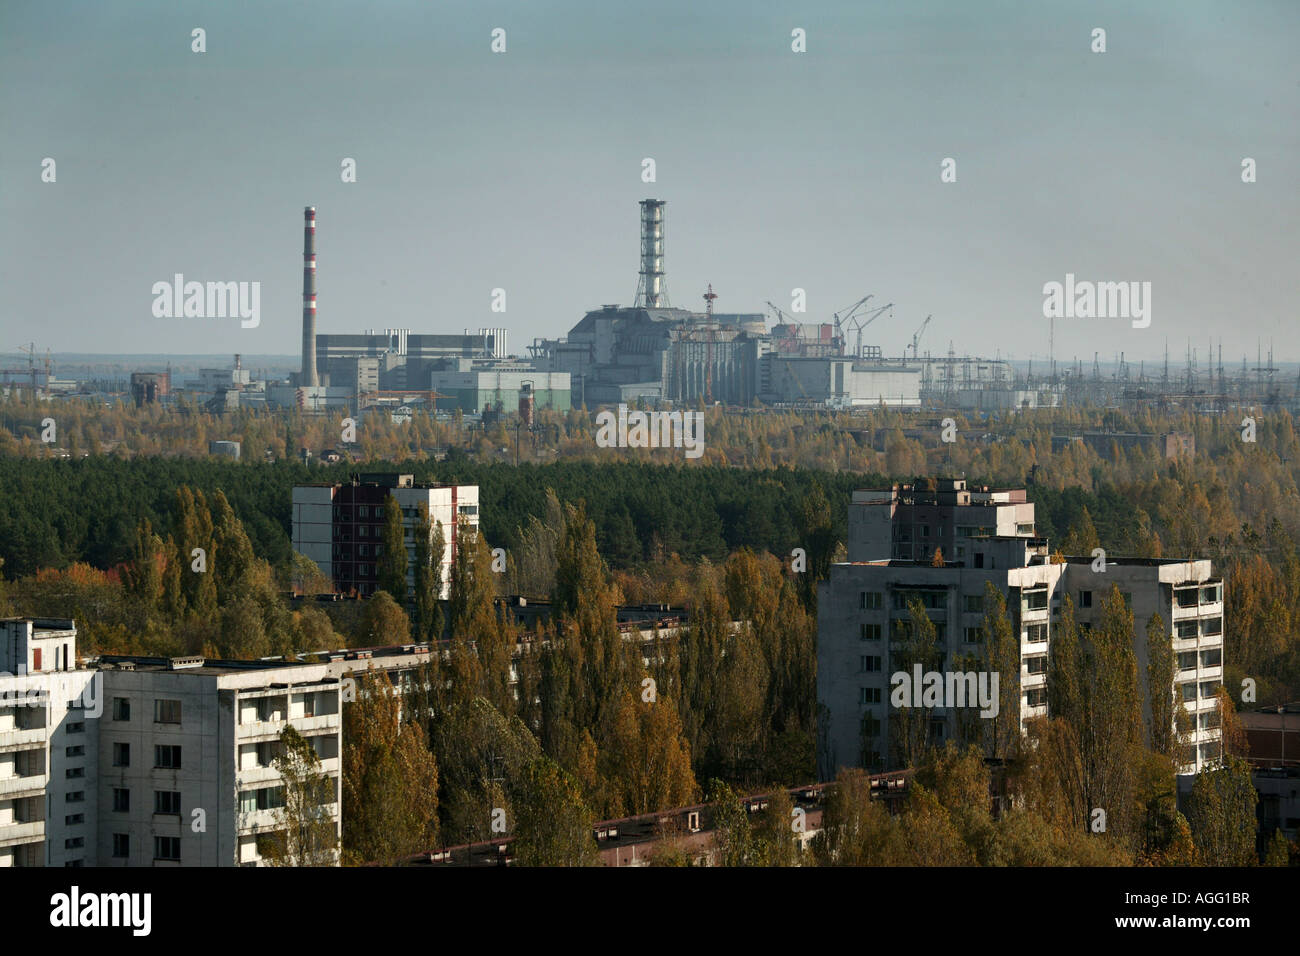 Chernobyl reactor from abandoned town of Pripyat - Stock Image